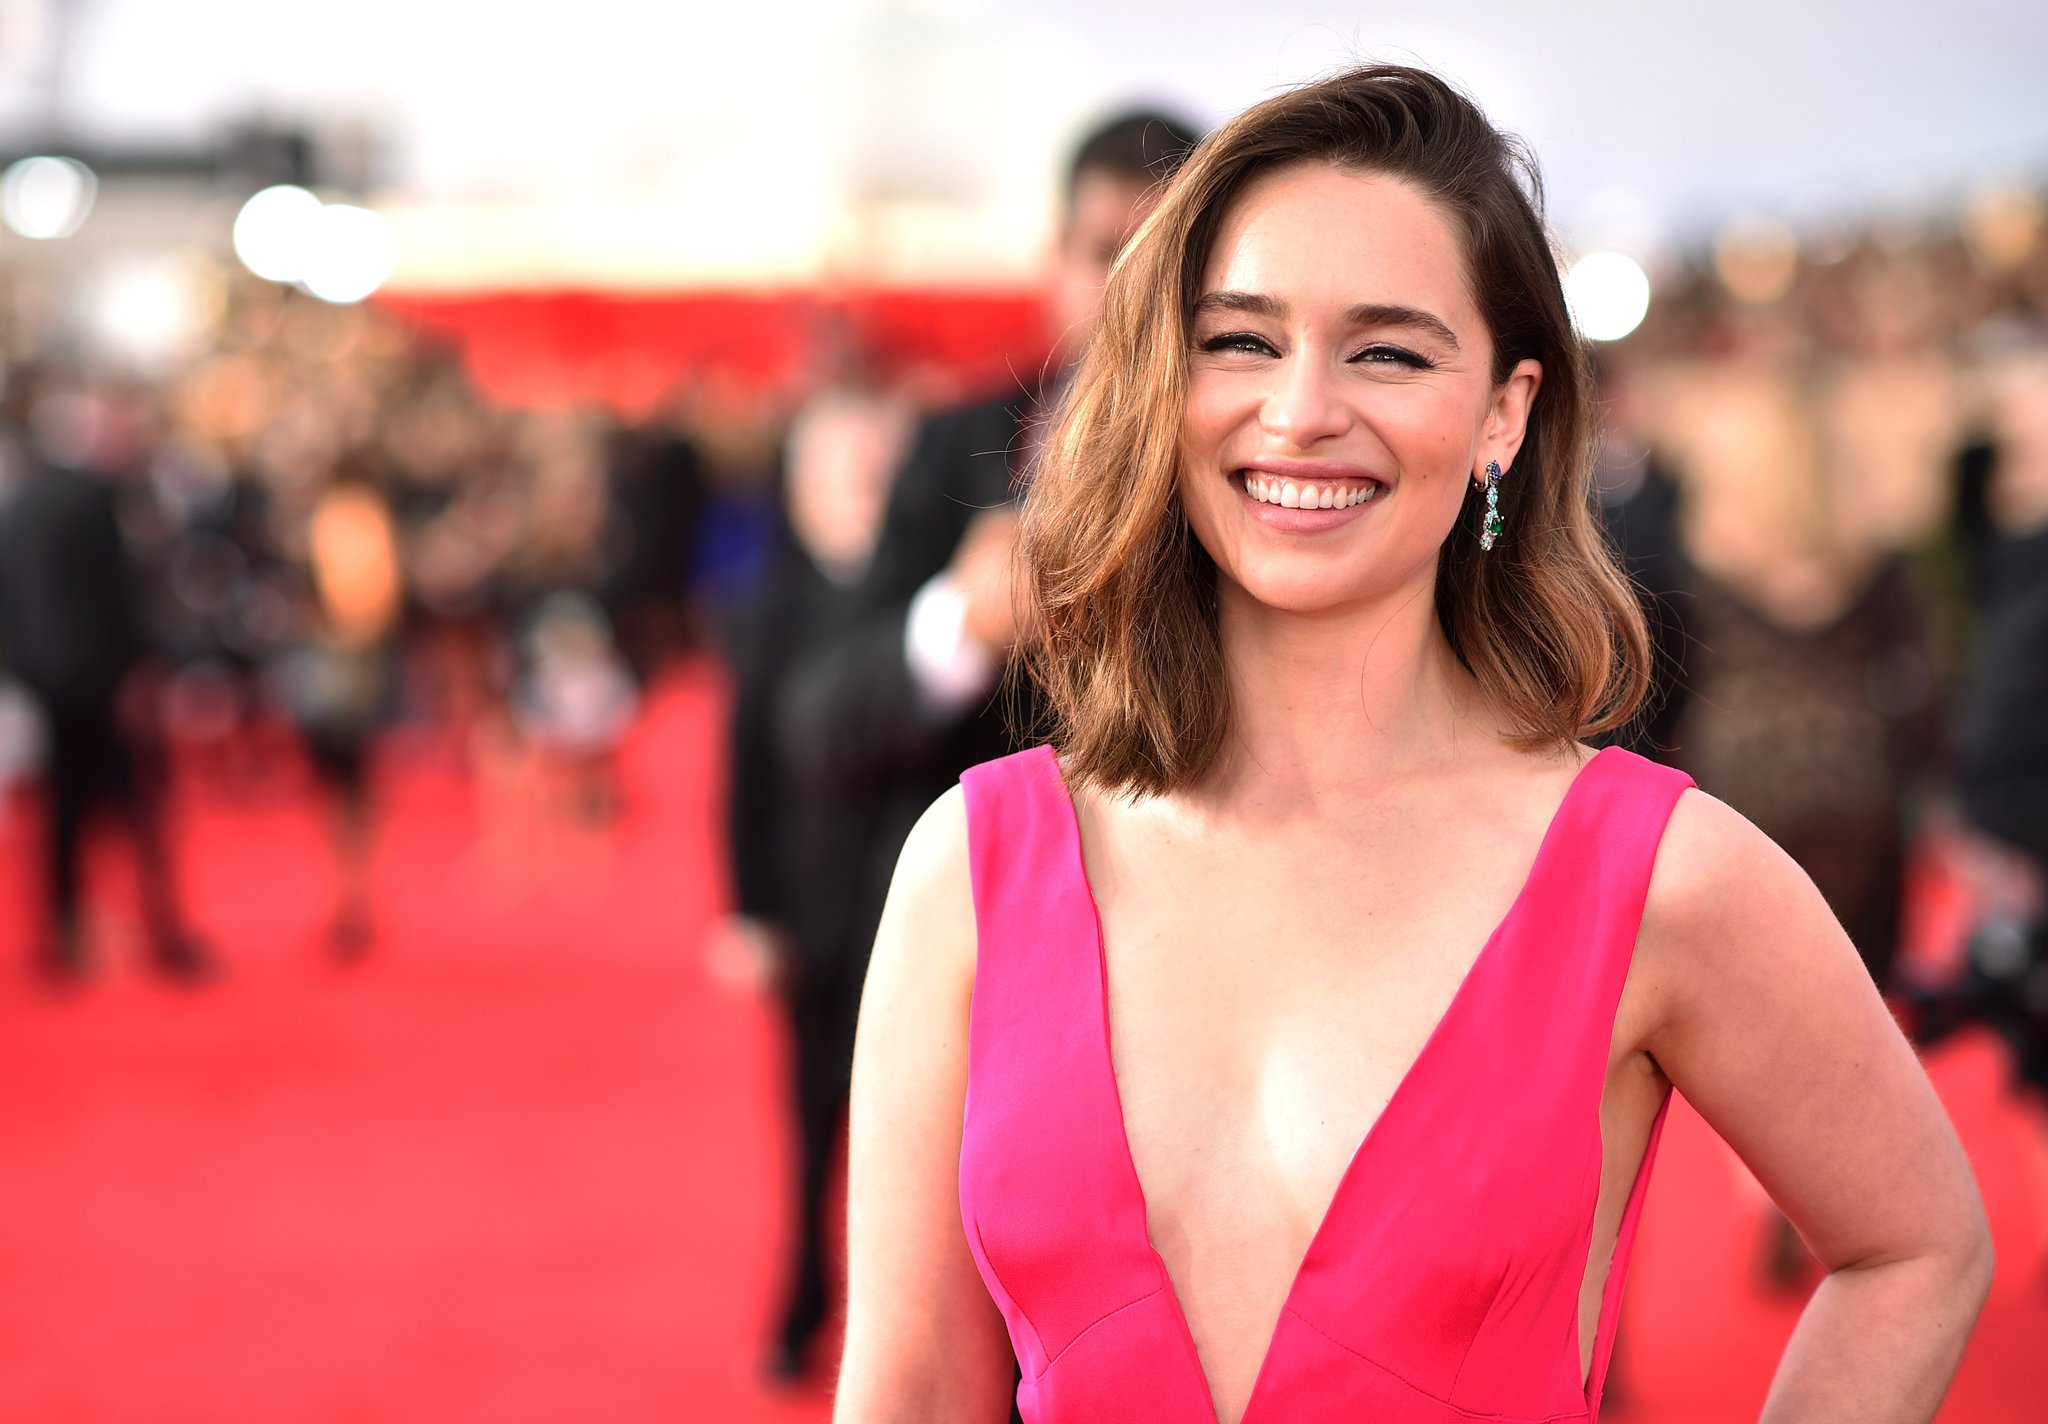 Emilia Clarke Once Dated This Famous Actor, and More Fun Facts About the Game of Thrones Star